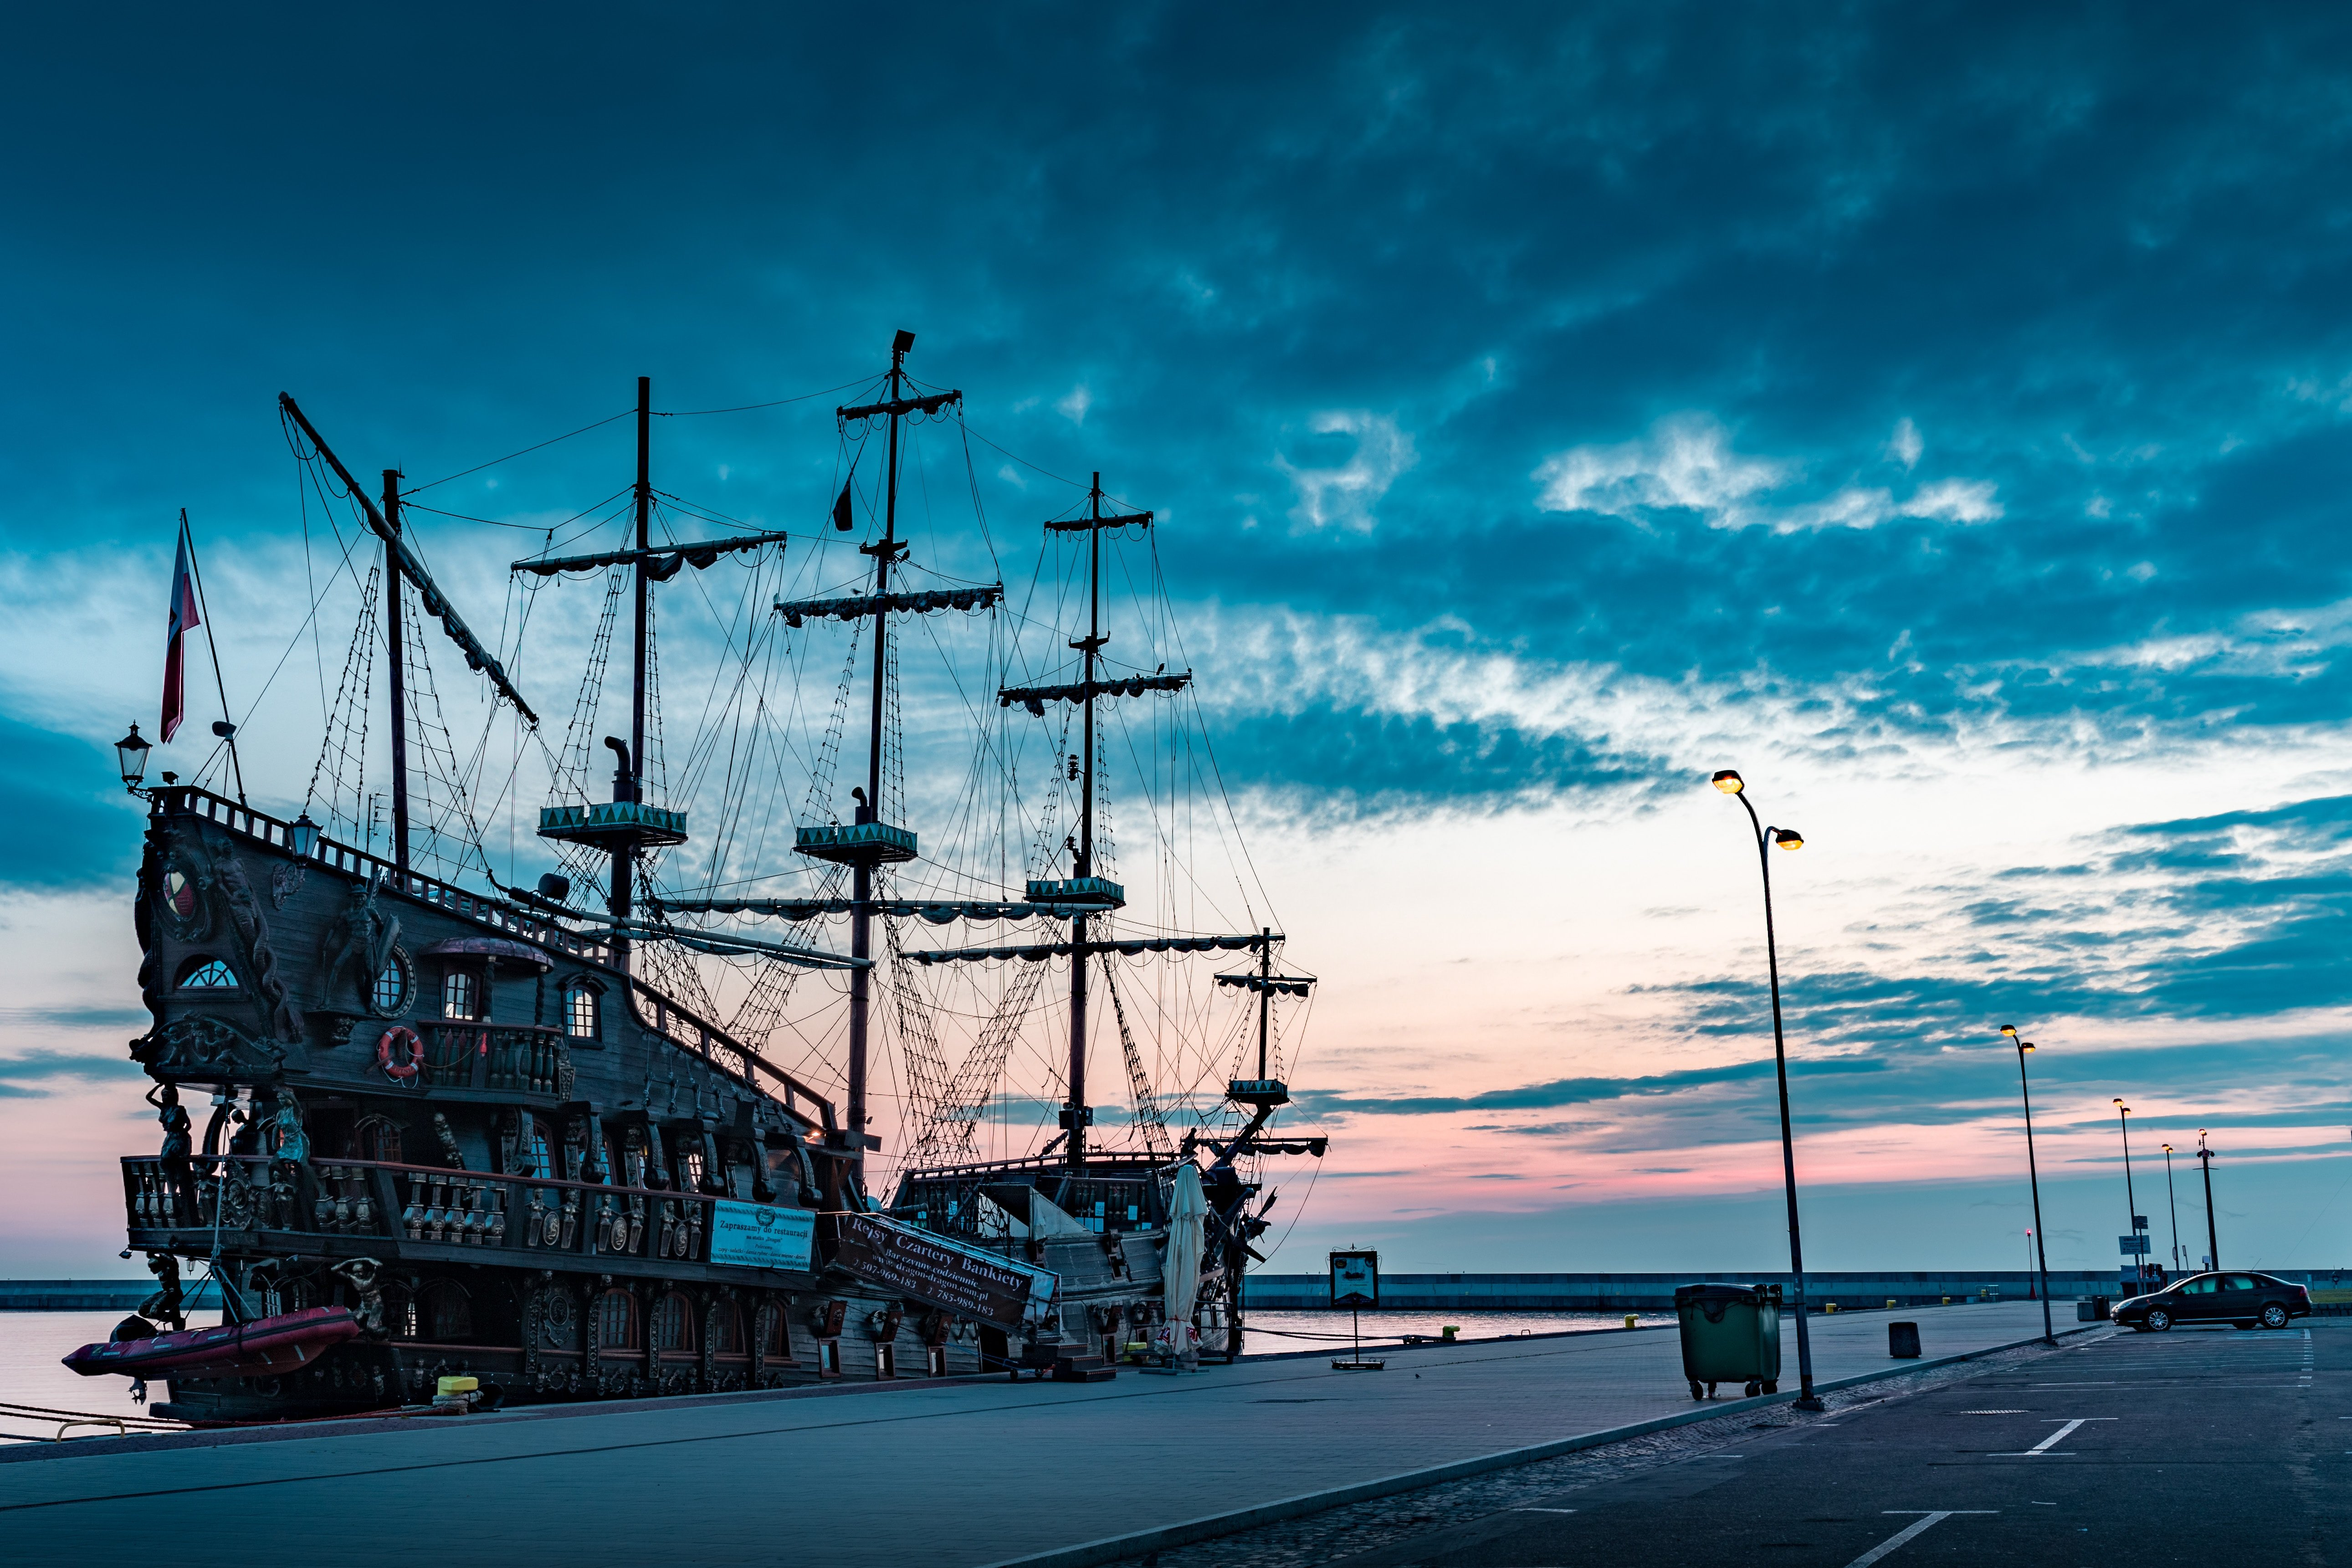 A galleon ship anchored at the dock | Source: Unsplash.com